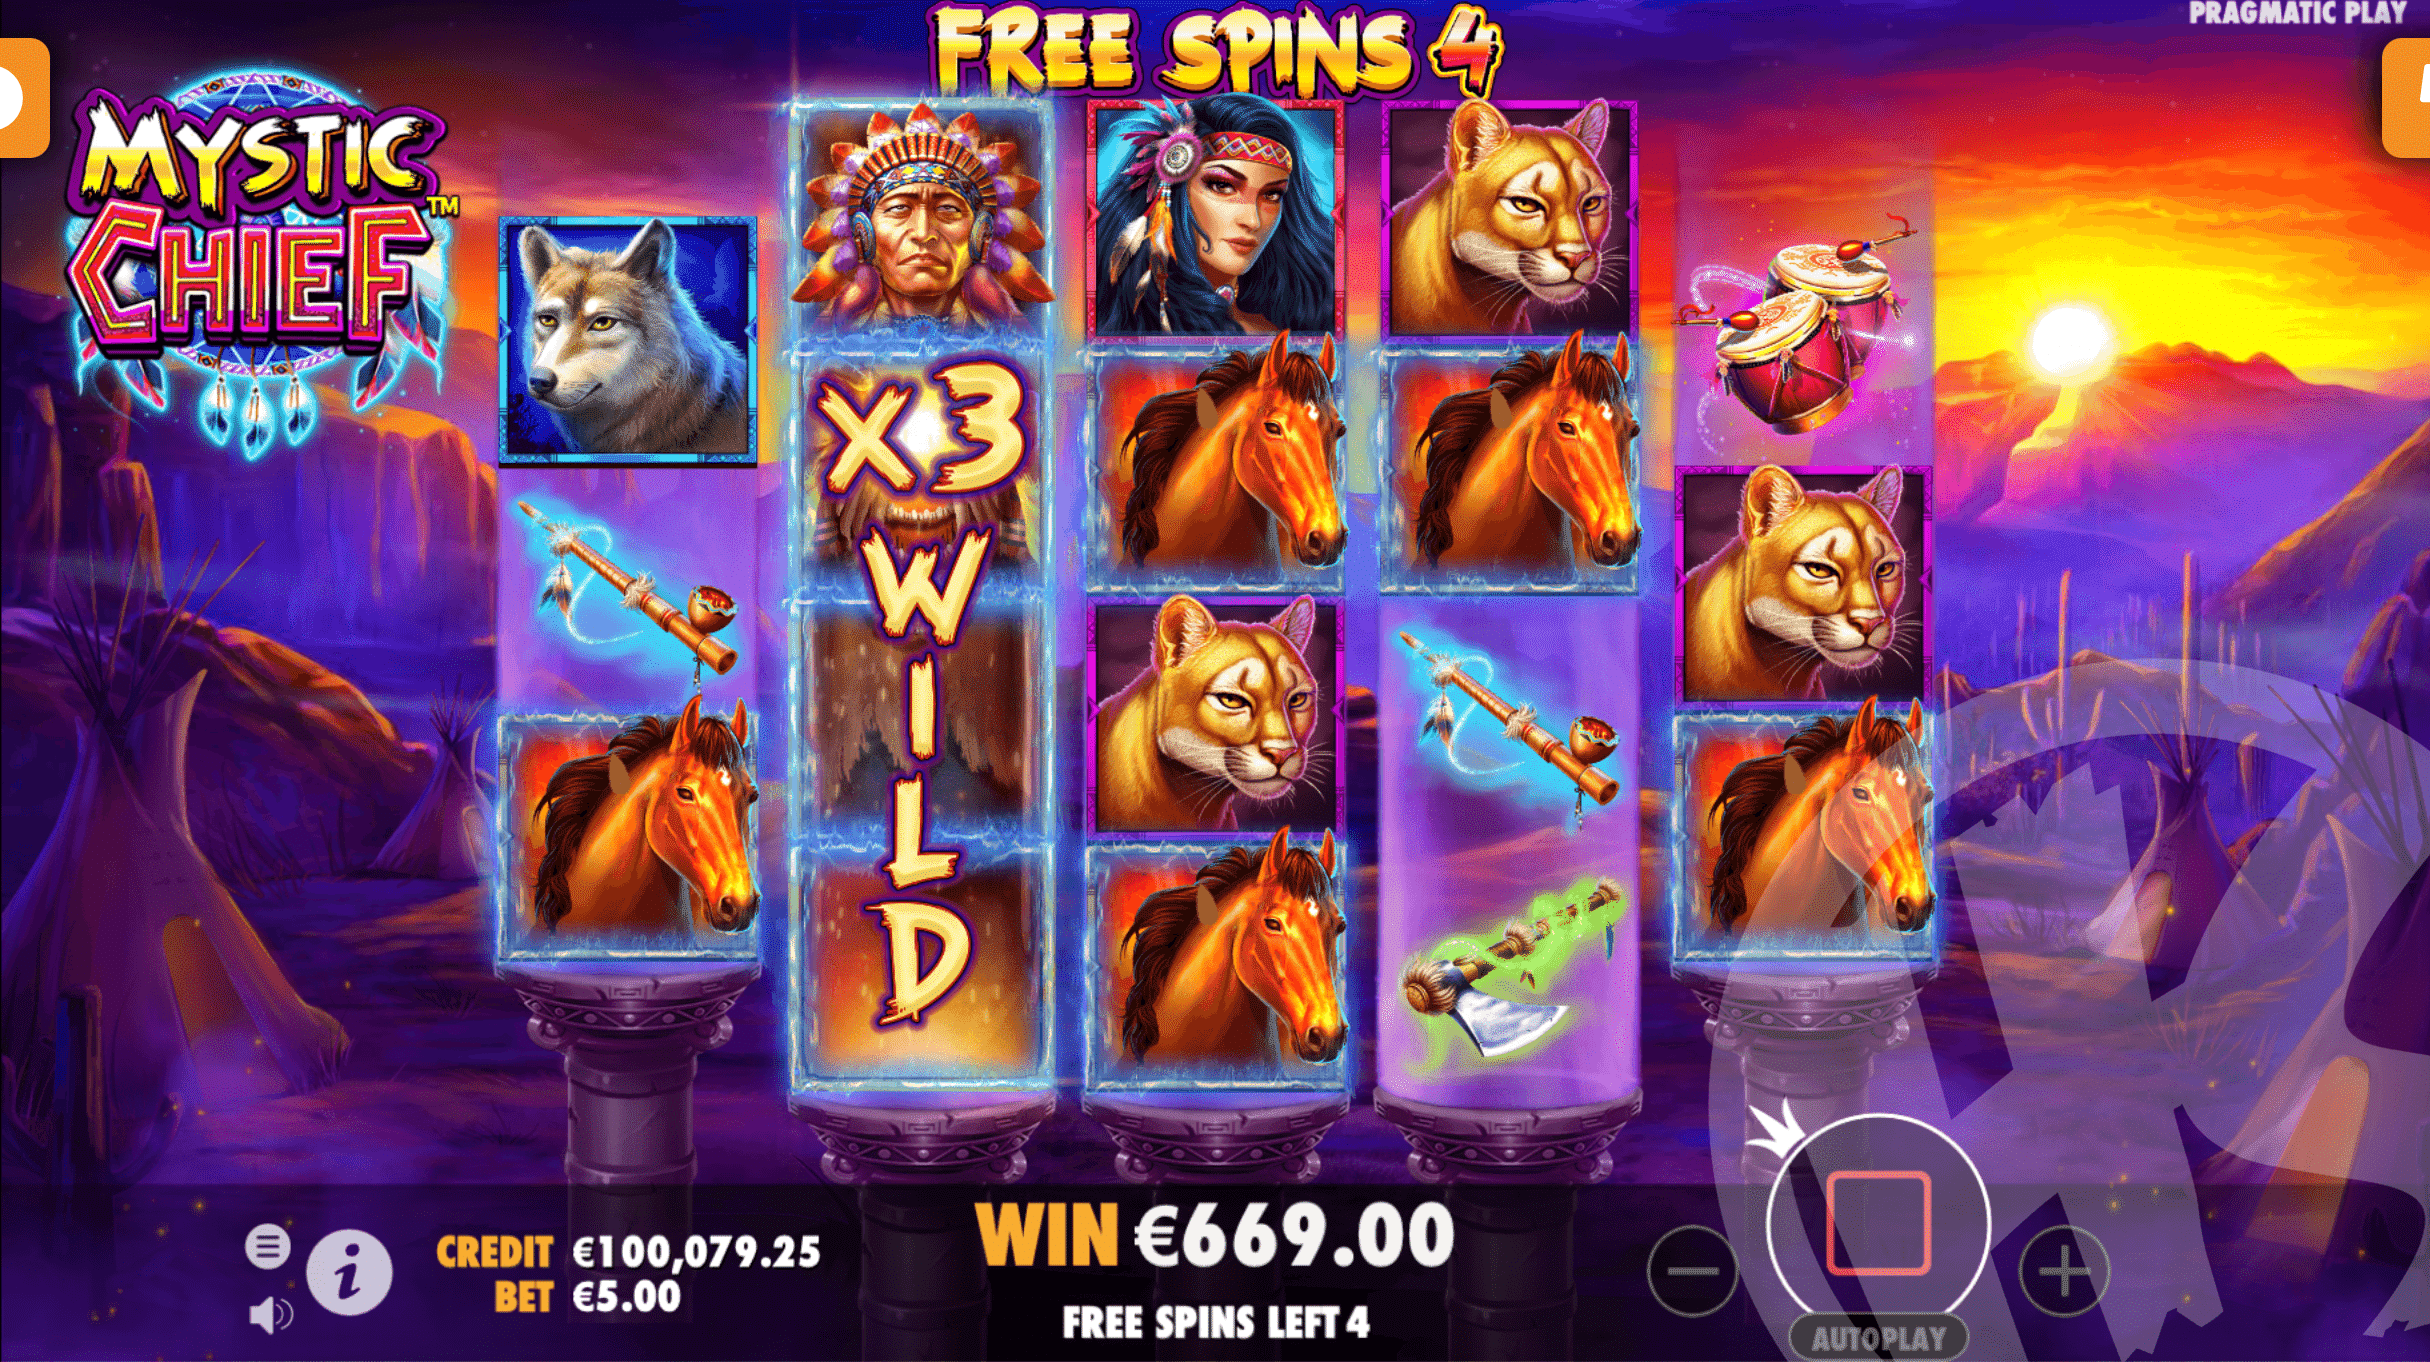 3 Scatters Trigger 8 Free Spins